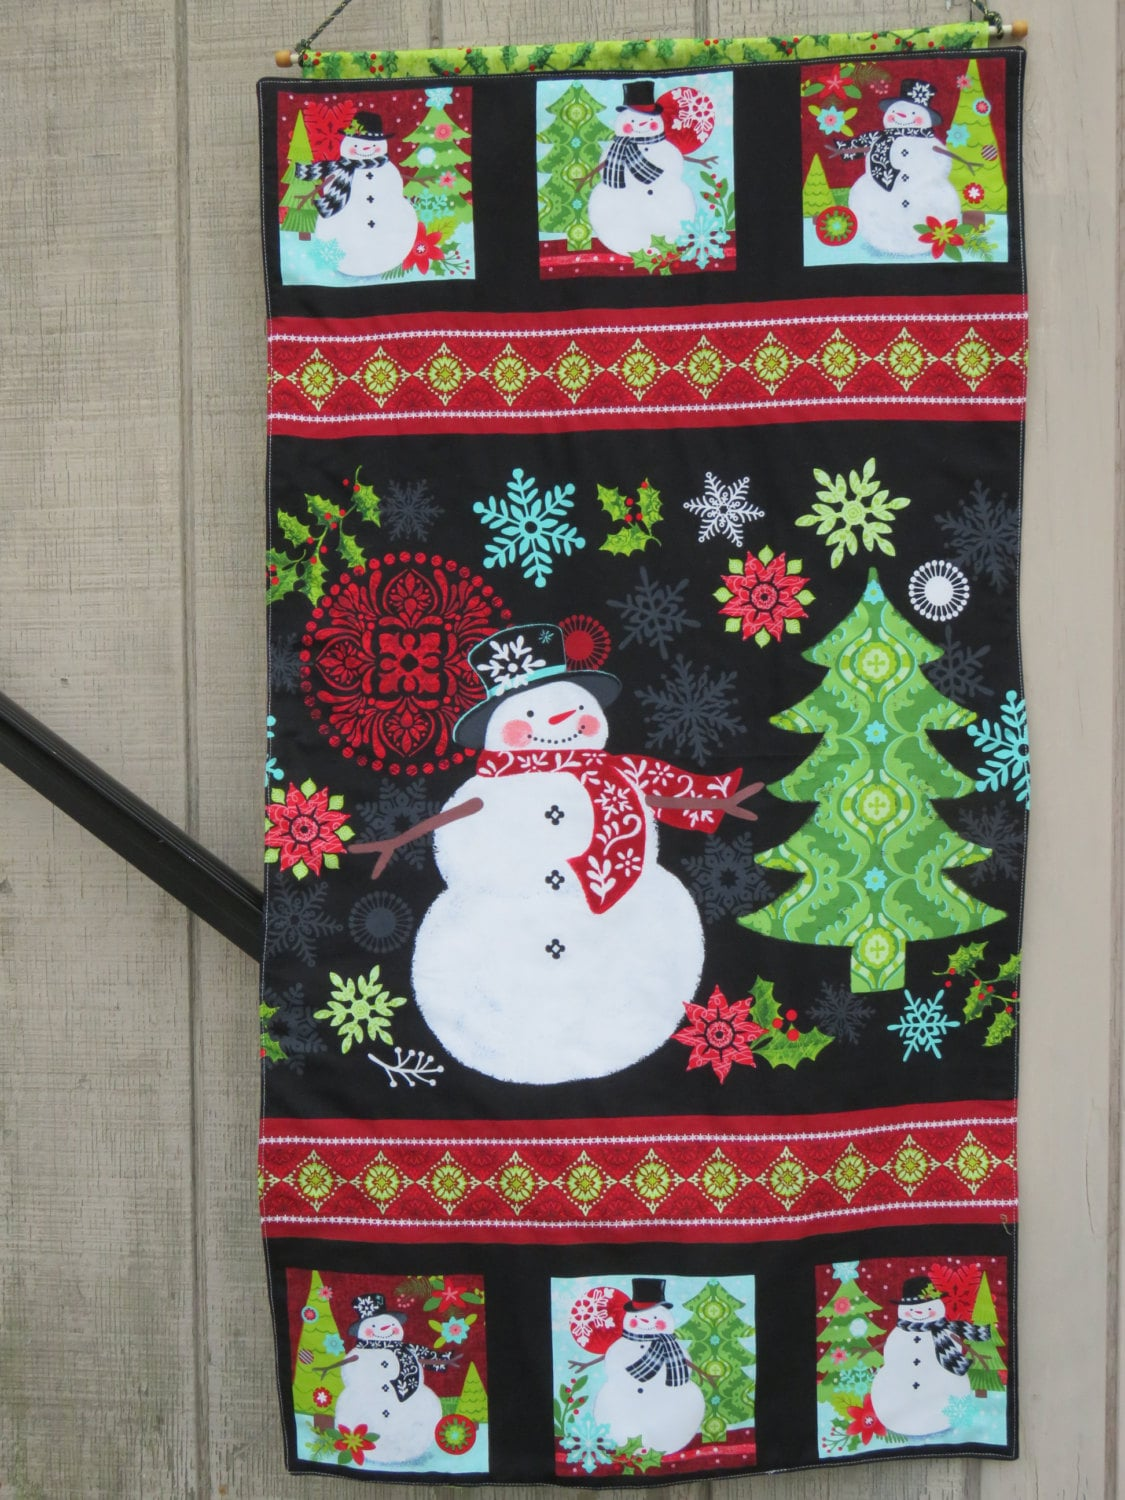 Snowman,Christmas,Wall,or,Door,Hanging,Housewares,Home_Decor,harvest,bountiful_harvest,wall_hanging,home_decor,fall,sewing,fabric,for_your_home,for_your_home_shop,pumpkin,apples,door_decor,home_design,wood,gymp